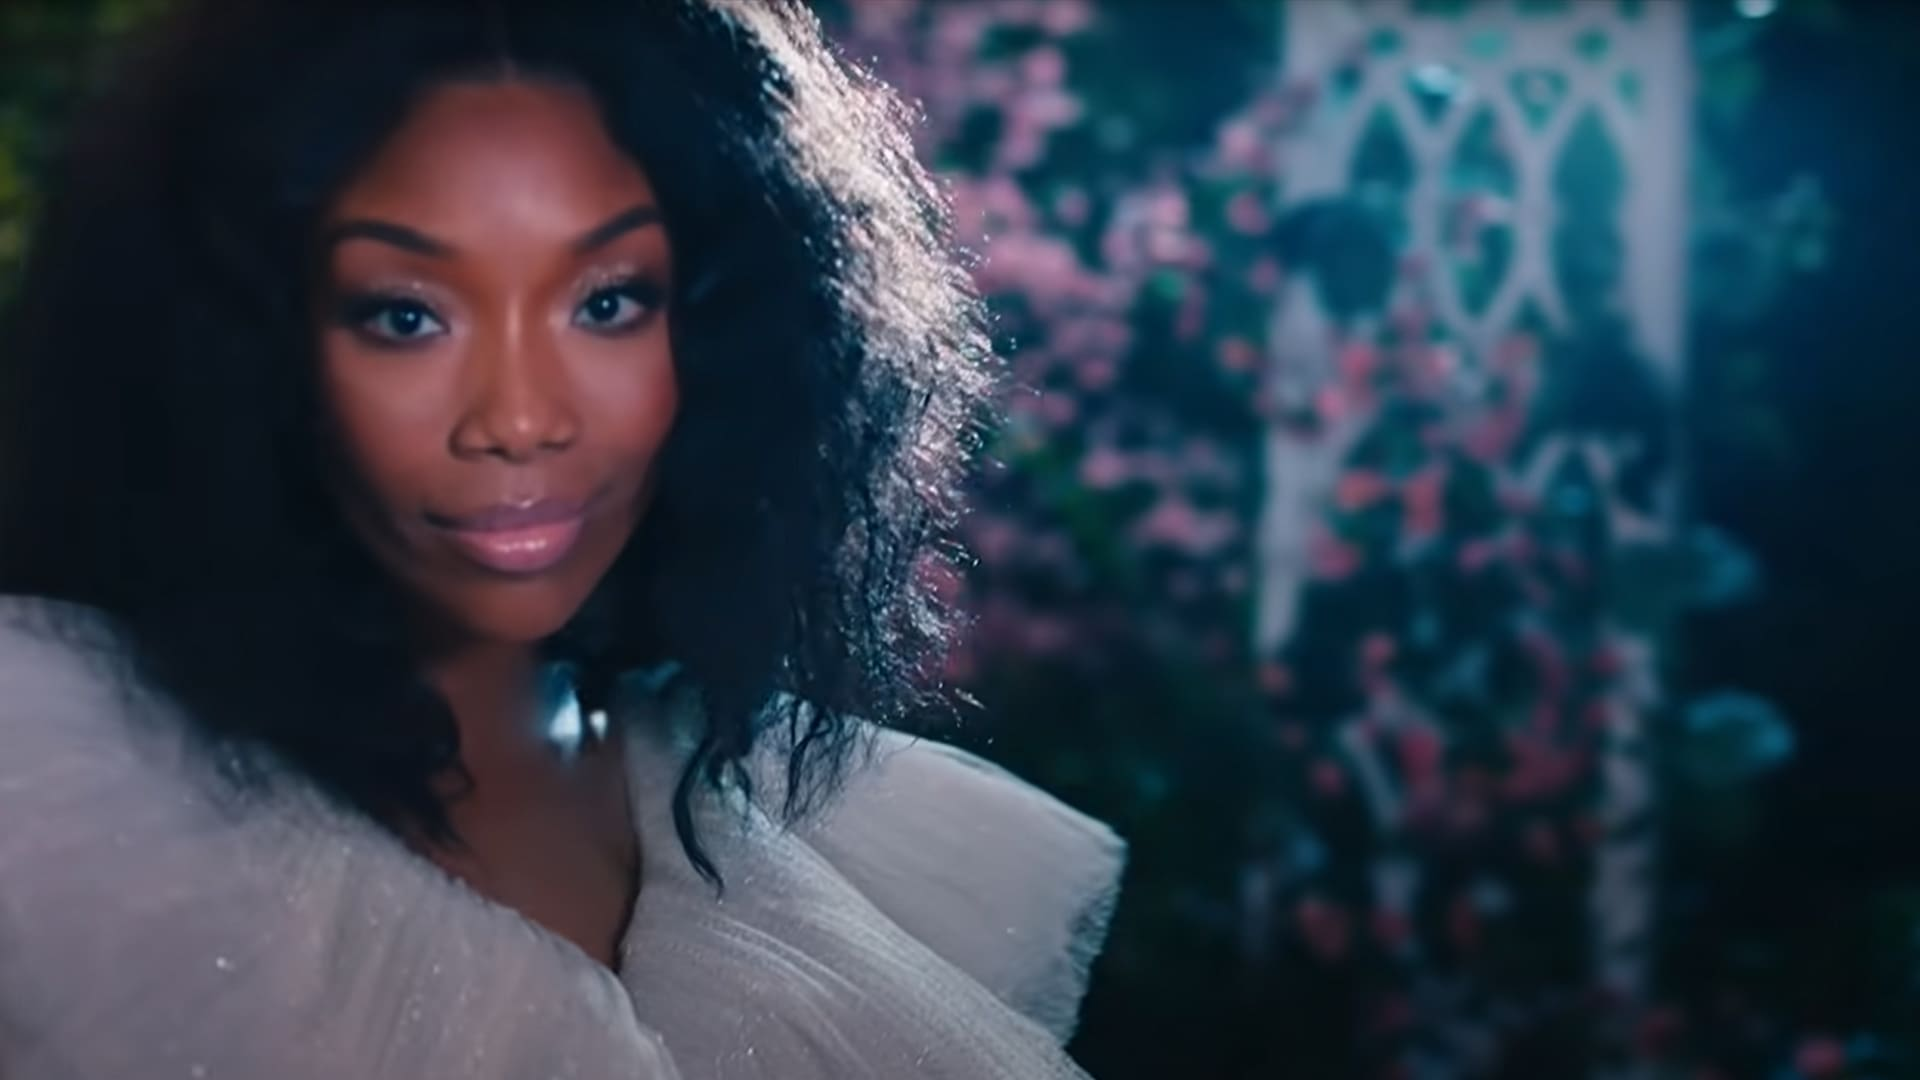 Brandy stands in front of flowers from the Starting Now official music video